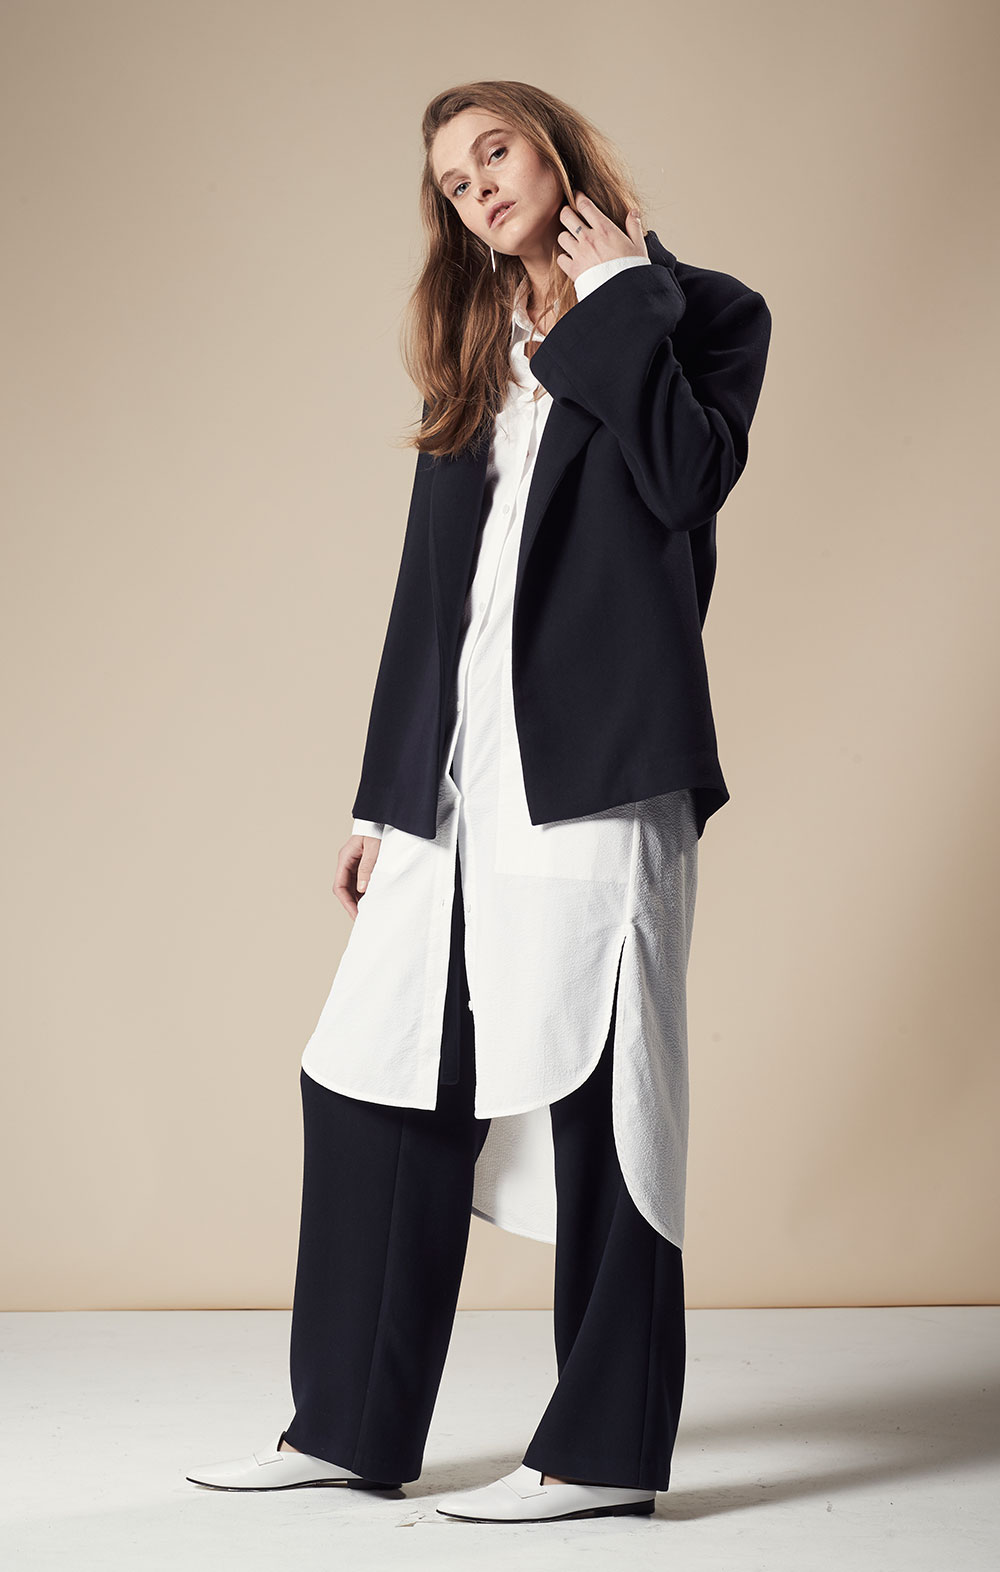 Open Sleeve Blazer FBJ045-NVY Open Sleeve Shirt Dress FBD050-WHT Tie Front Wide-leg Pants FBP035-NVY